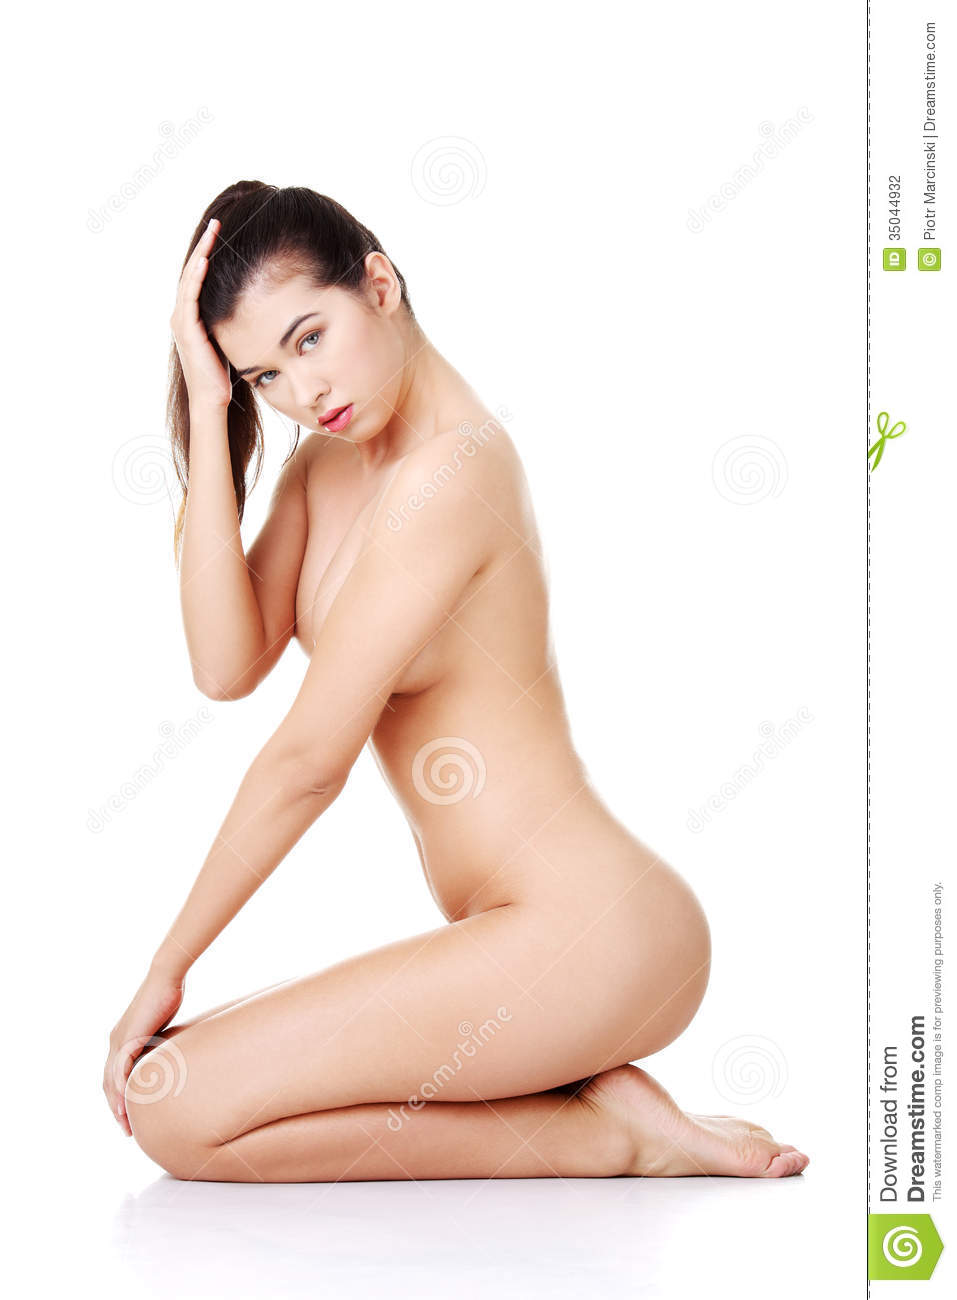 girl sitting on scanner nude